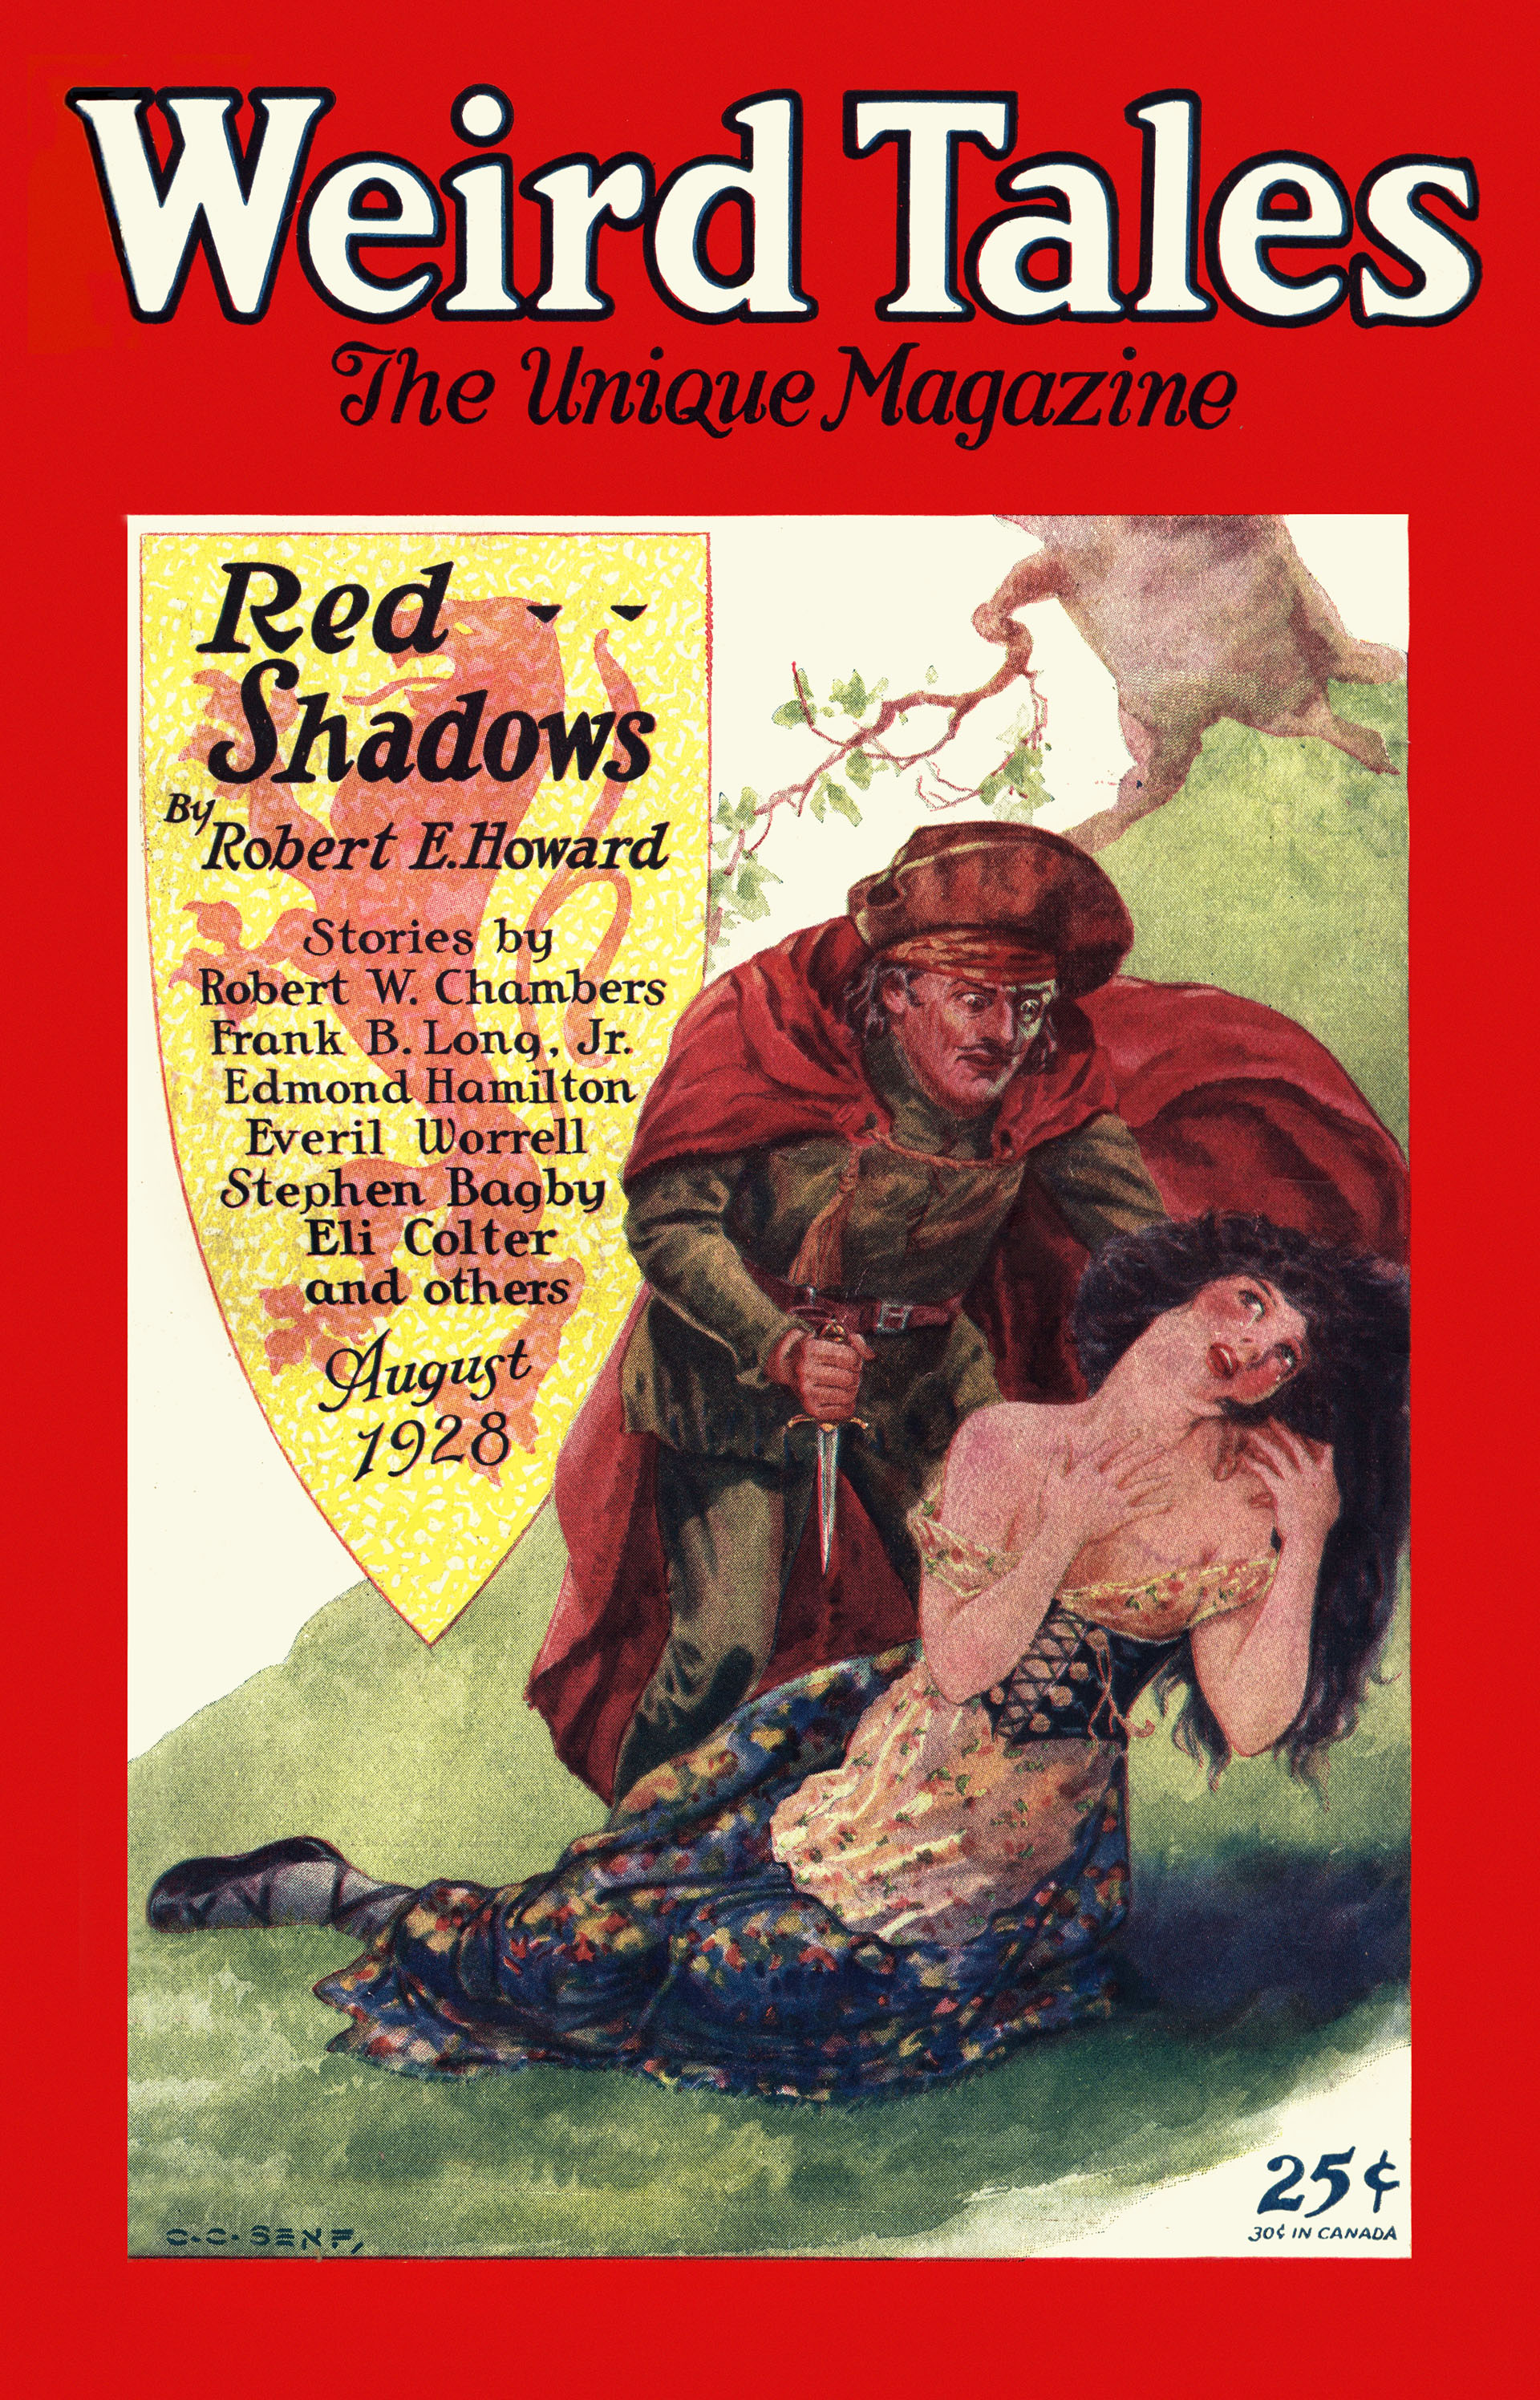 Weird Tales cover image for August 1928: Villain 'Le Loup' standing over a woman whom he plans to ravish and slay.